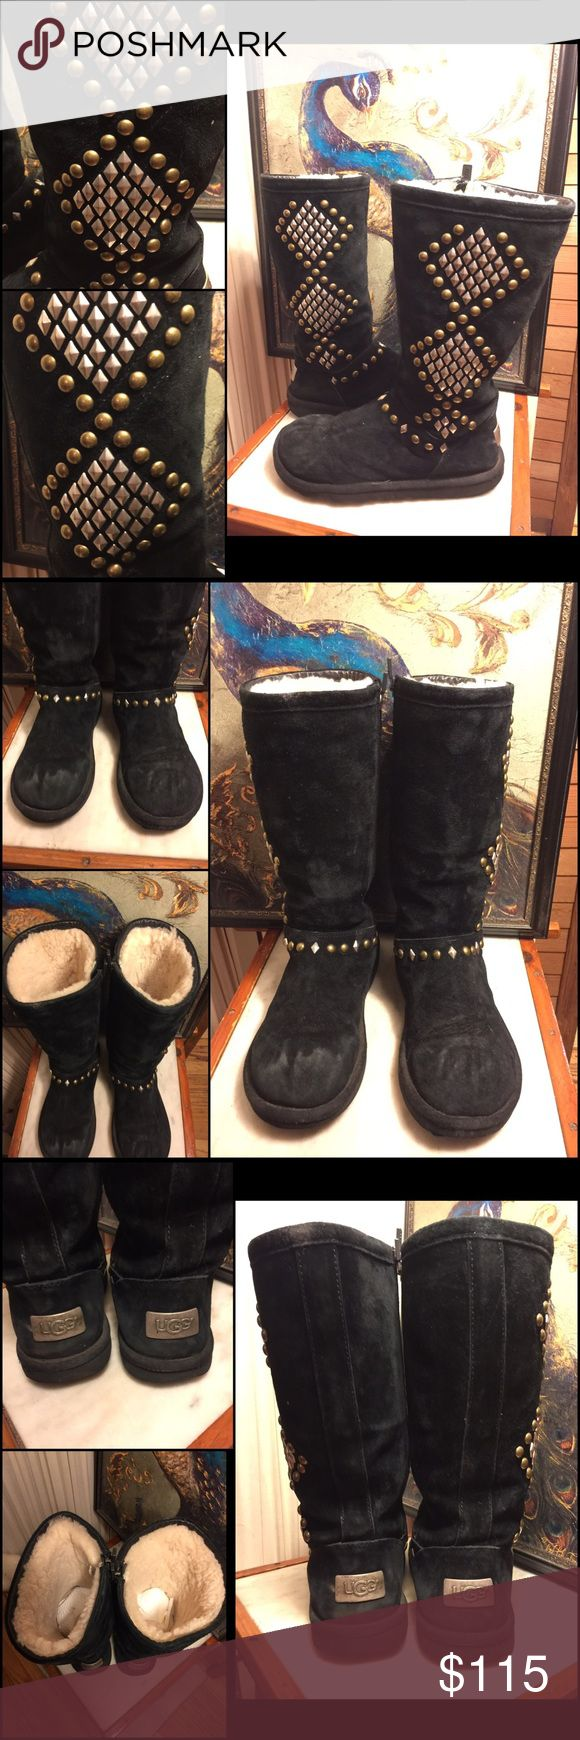 """SZ 6-UGG AVONDALE BLACK STUDDED SUEDE TALL BOOTS CHIC UGG AVONDALE BOOTS. CLASSIC BLACK SUEDE/SHEEPSKIN BOOTS WITH BRASS/SILVER STUDS. ZIPPER IN INTERIOR. TALL 12"""" BOOTS. 1"""" RUBBER BOTTOM. Calf opening 14.33"""". UNIQUE/DRESSIER UP-WITH ALL THE COMFORTS OF THE CLASSIC UGG. RETAIL $285. GREAT PRE-OWNED CONDITION! THE ONLY WEAR IS SOME SUEDE RUBBING AT TOE AREA OF BOTH BOOTS. SZ 6 MEDIUM WIDTH. PLEASE DO NOT HESITATE TO ASK ANY QUESTIONS! #uggaustralia #blacksuededleather #blacksheepskin…"""